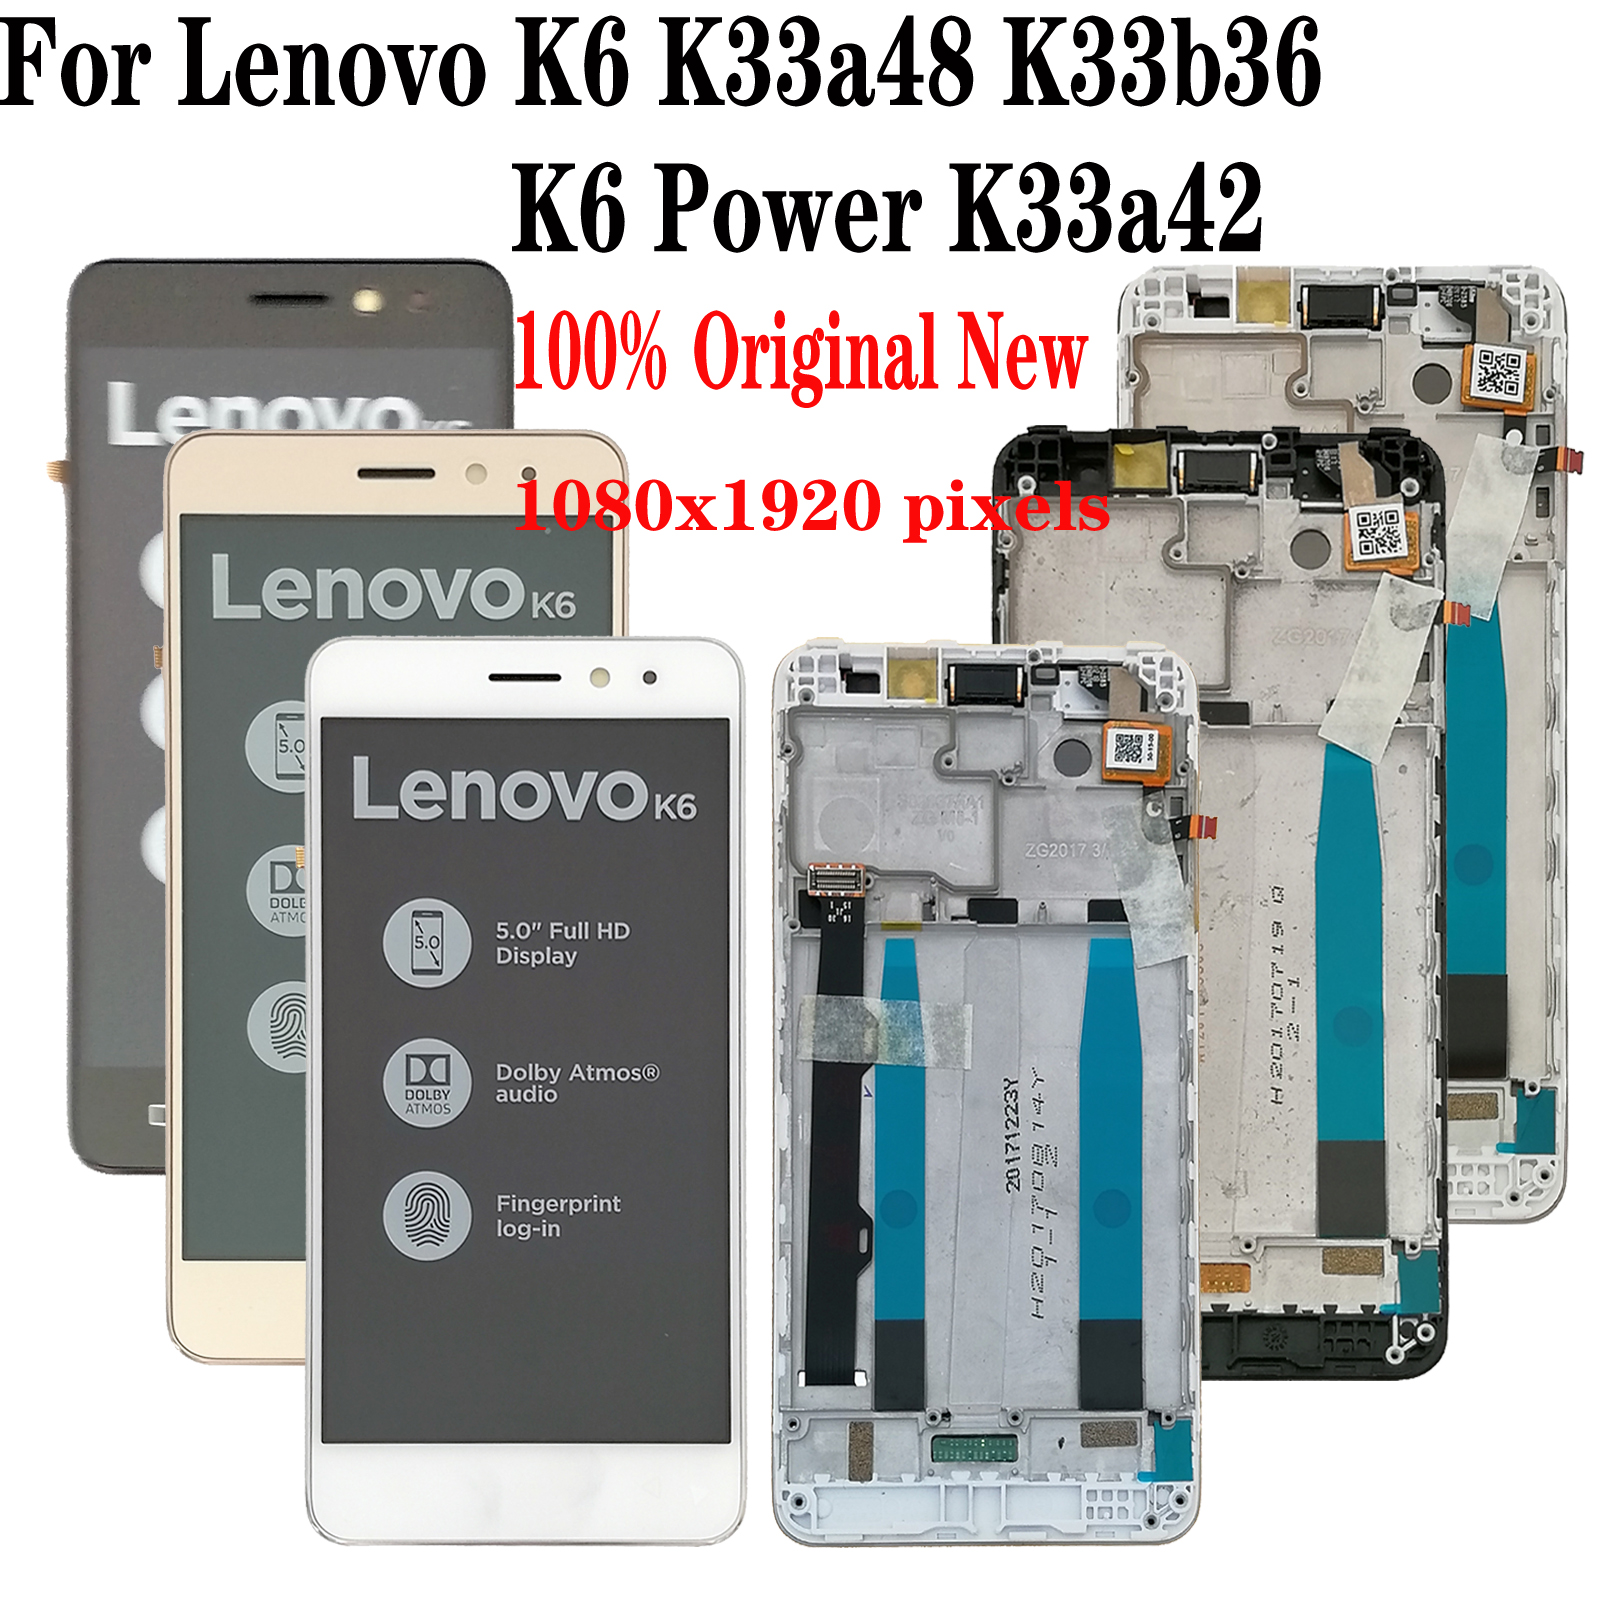 Shyueda 100% Oiginal New With Frame For Lenovo K6 K33a48 K33b36 / K6 Power K33a42 5.0